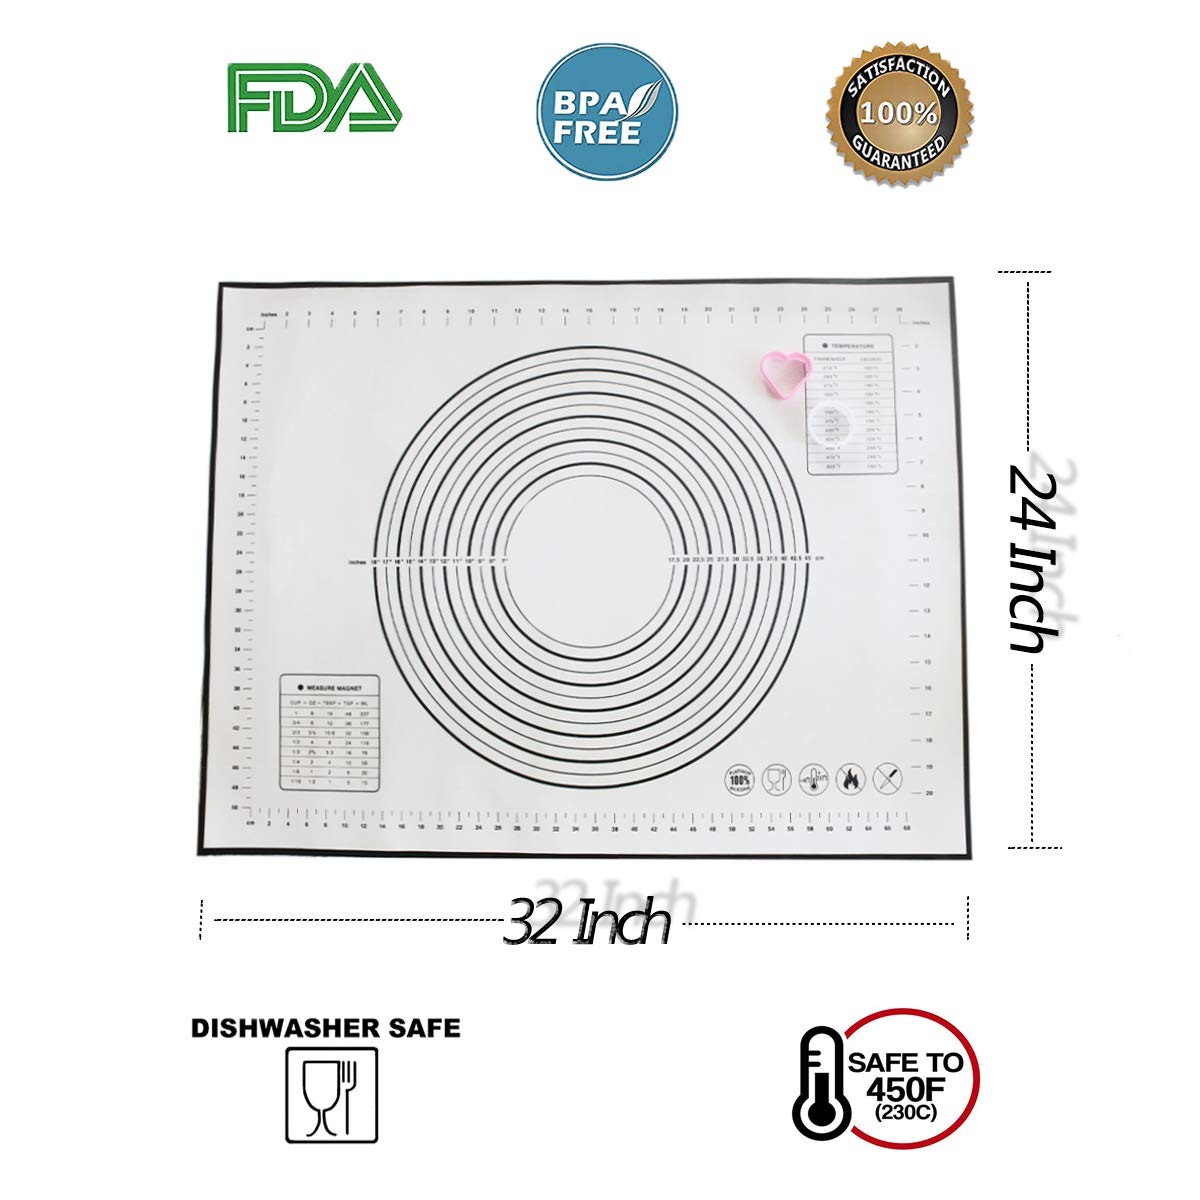 XXXL Size Silicone Baking Mat(32x 24 Inch) Pastry Mat with Measurements Non-slip& Non-Stick Reusable Rolling Mat with two free cookie cutters, BPA Free and Heat Resistant - Ideal for Rolling Dough by AUDIOFINA (Image #2)